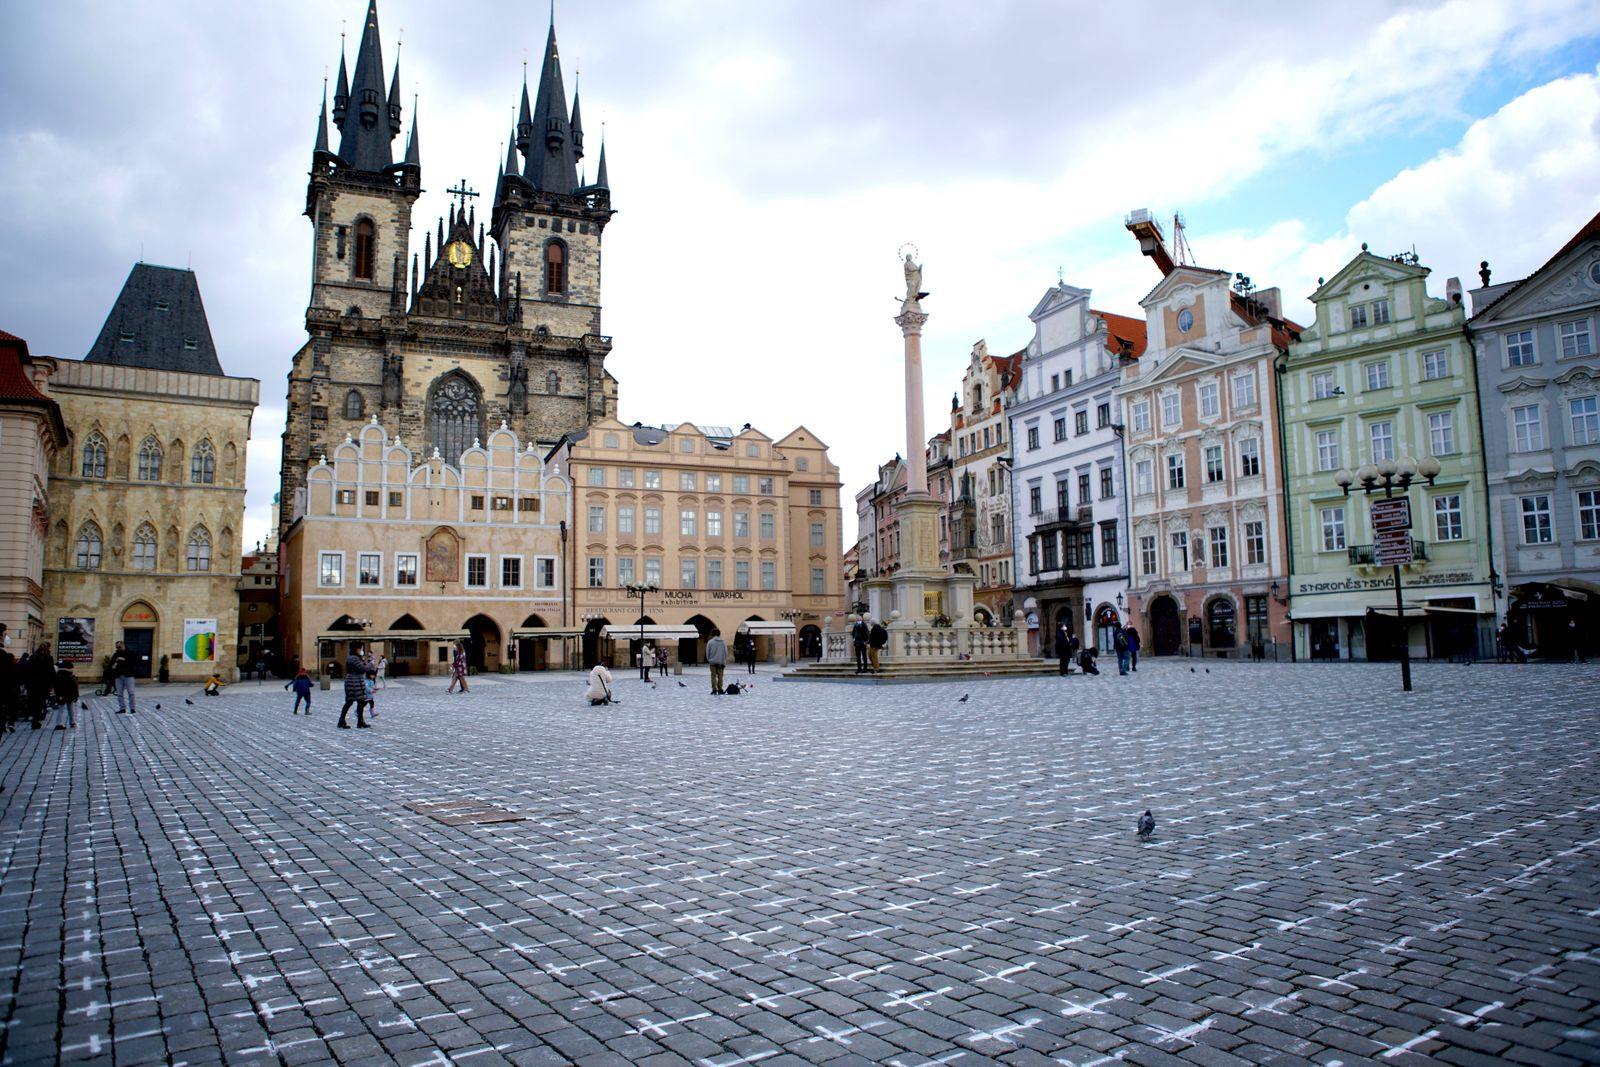 (210323) -- PRAGUE, March 23, 2021 -- The ground of the Old Town Square is seen painted with thousands of white crosses